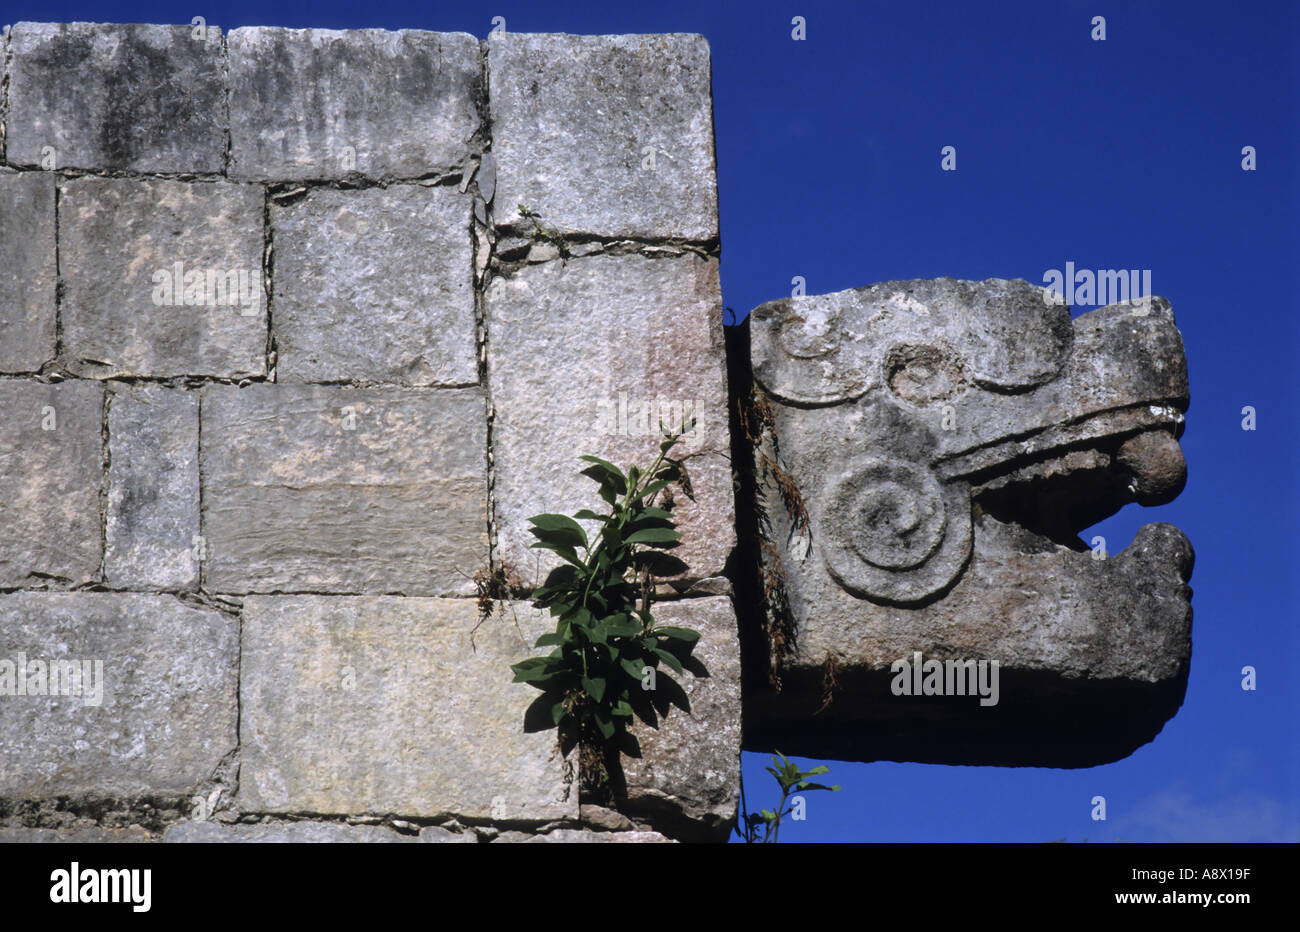 Chichen Itza, Yucatan, Mexico - The Temple Of The Jaguars - Stock Image